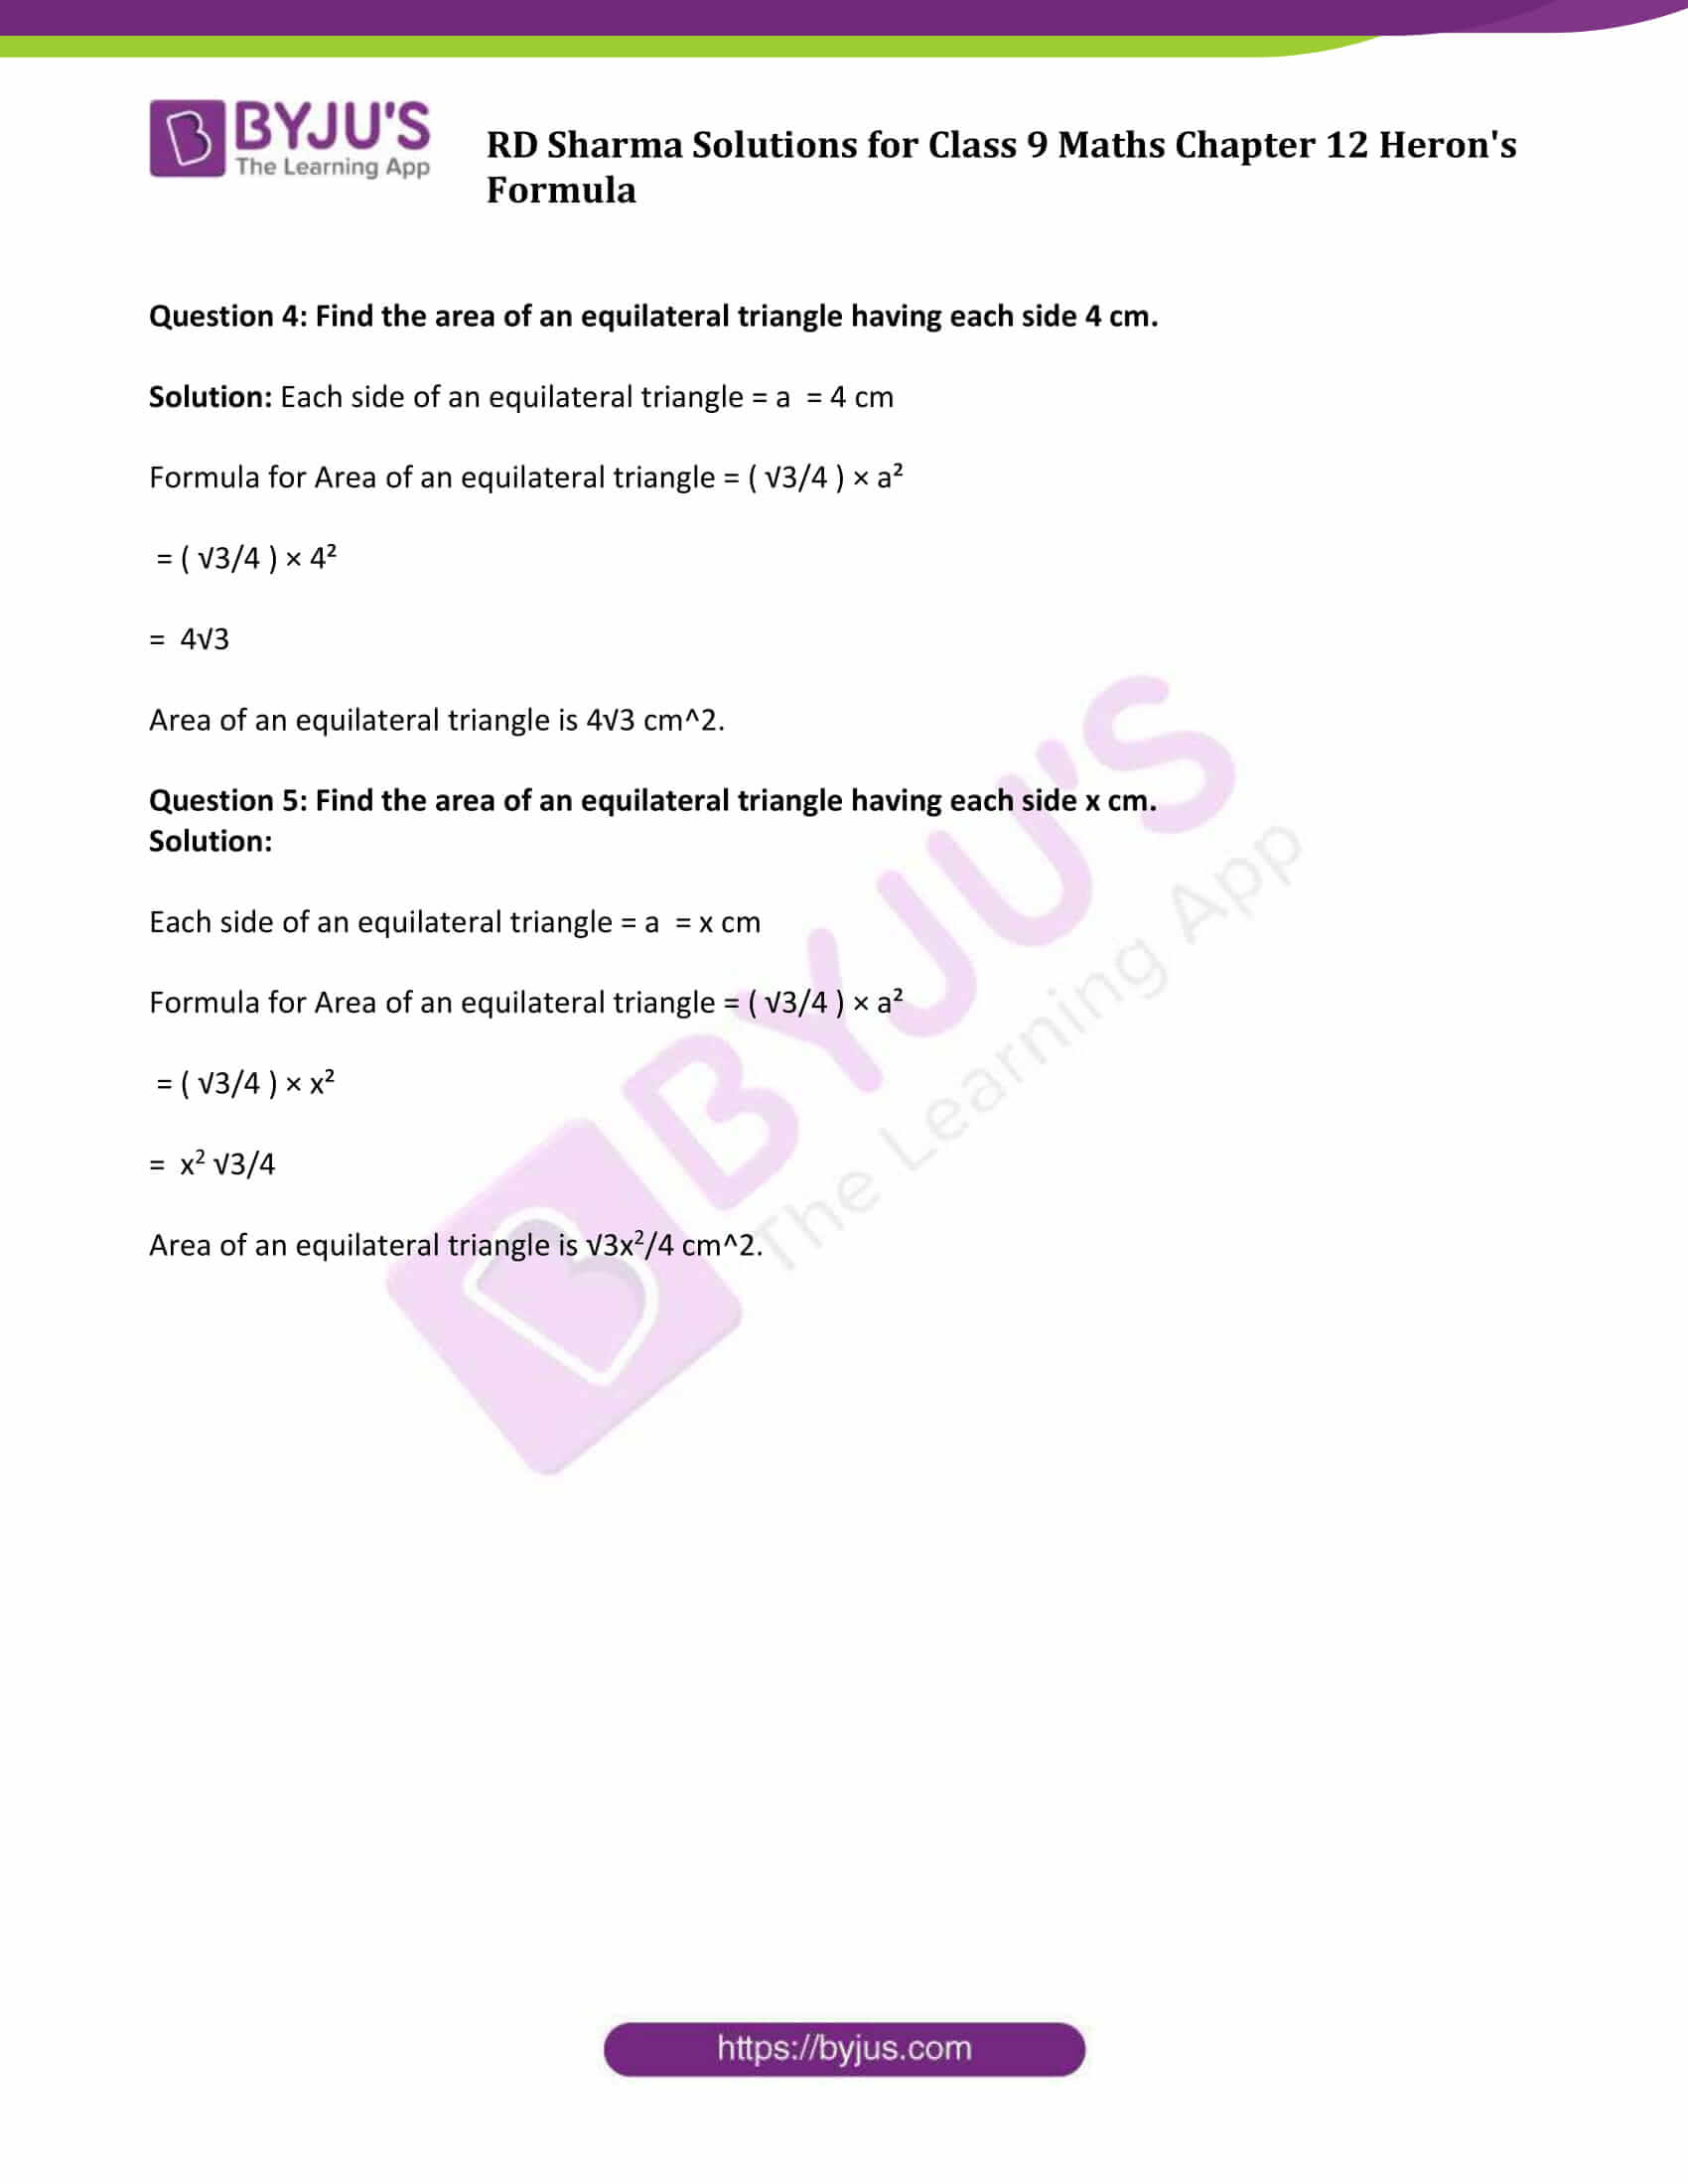 RD Sharma Solution Class 9 Maths Chapter 12 Herons Formula 20